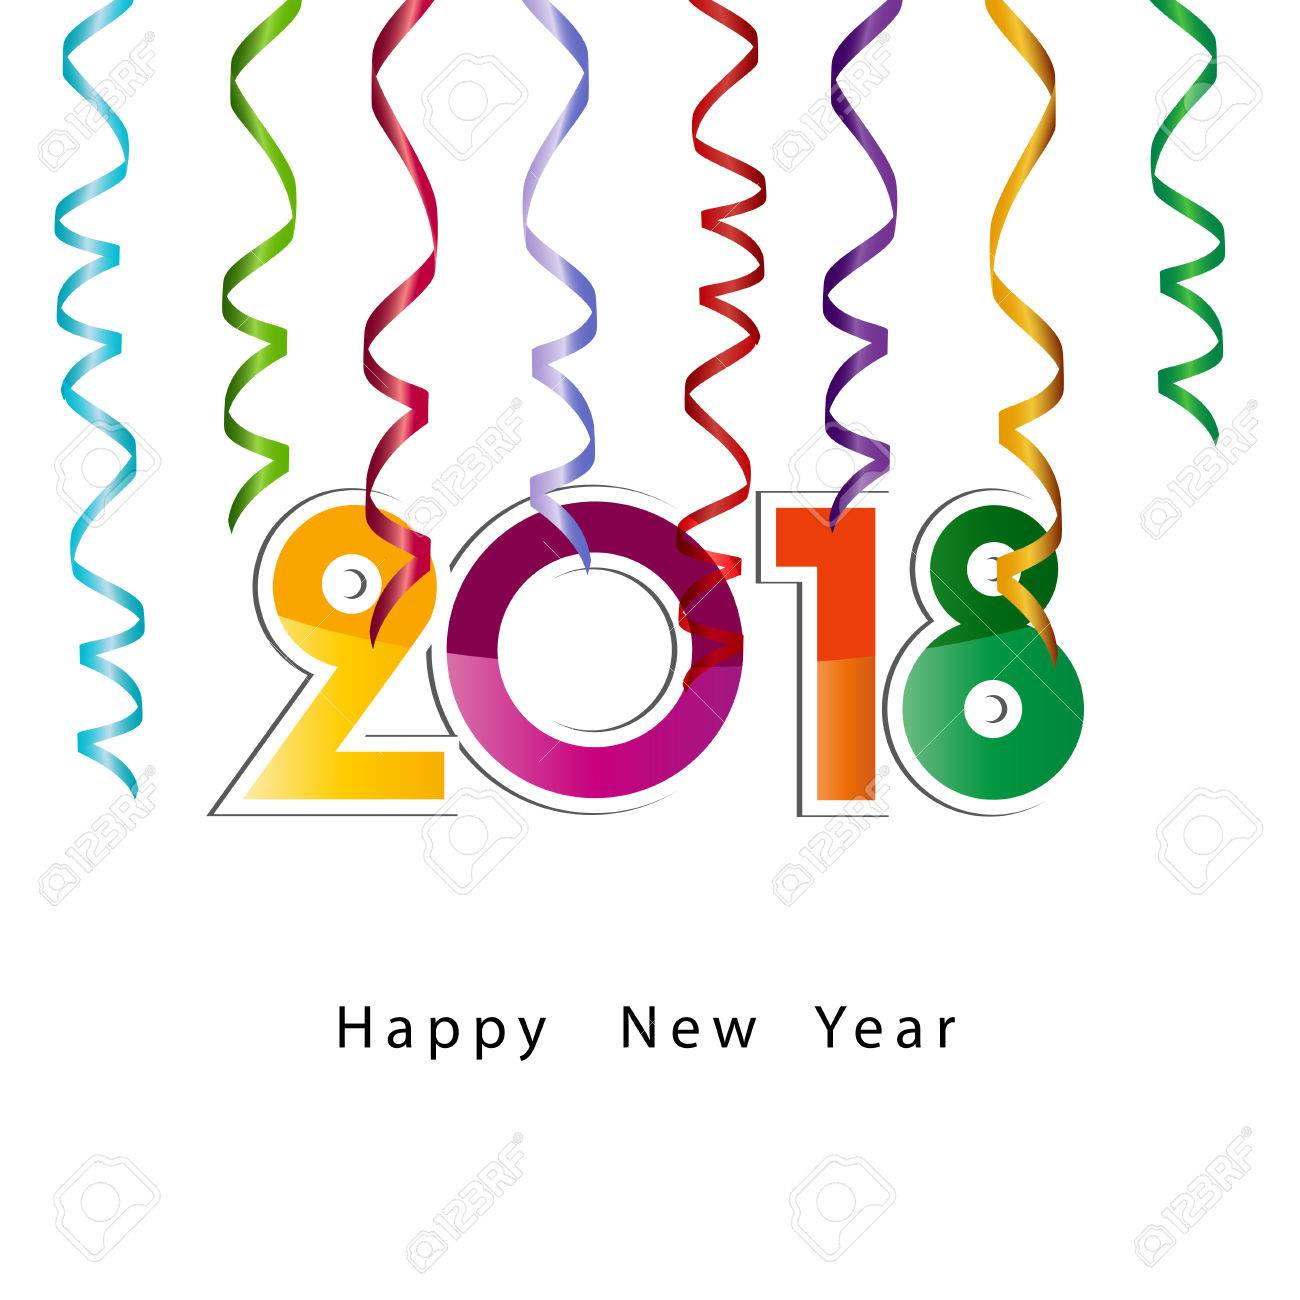 Happy new year 2018 background or element of a holidays card happy new year 2018 background or element of a holidays card stock vector 81565530 voltagebd Images